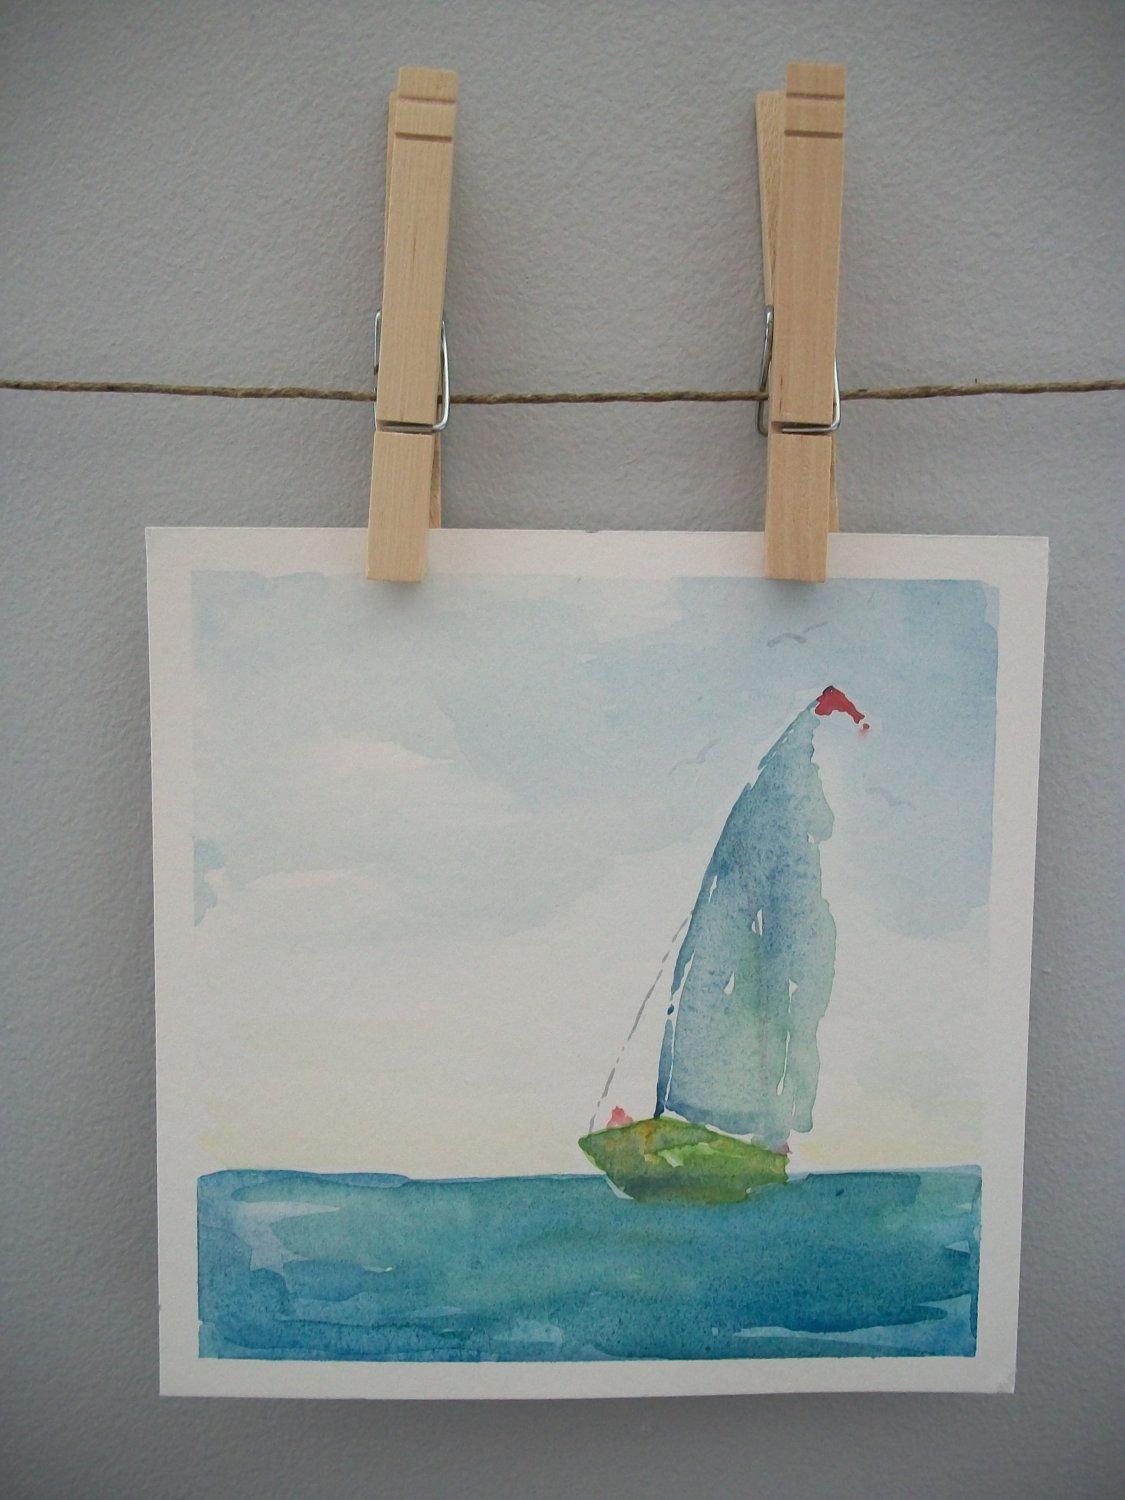 Original watercolor art for sale - Sale Clearance Rough Seas Framed Original Watercolor Painting Sailboats Abstract